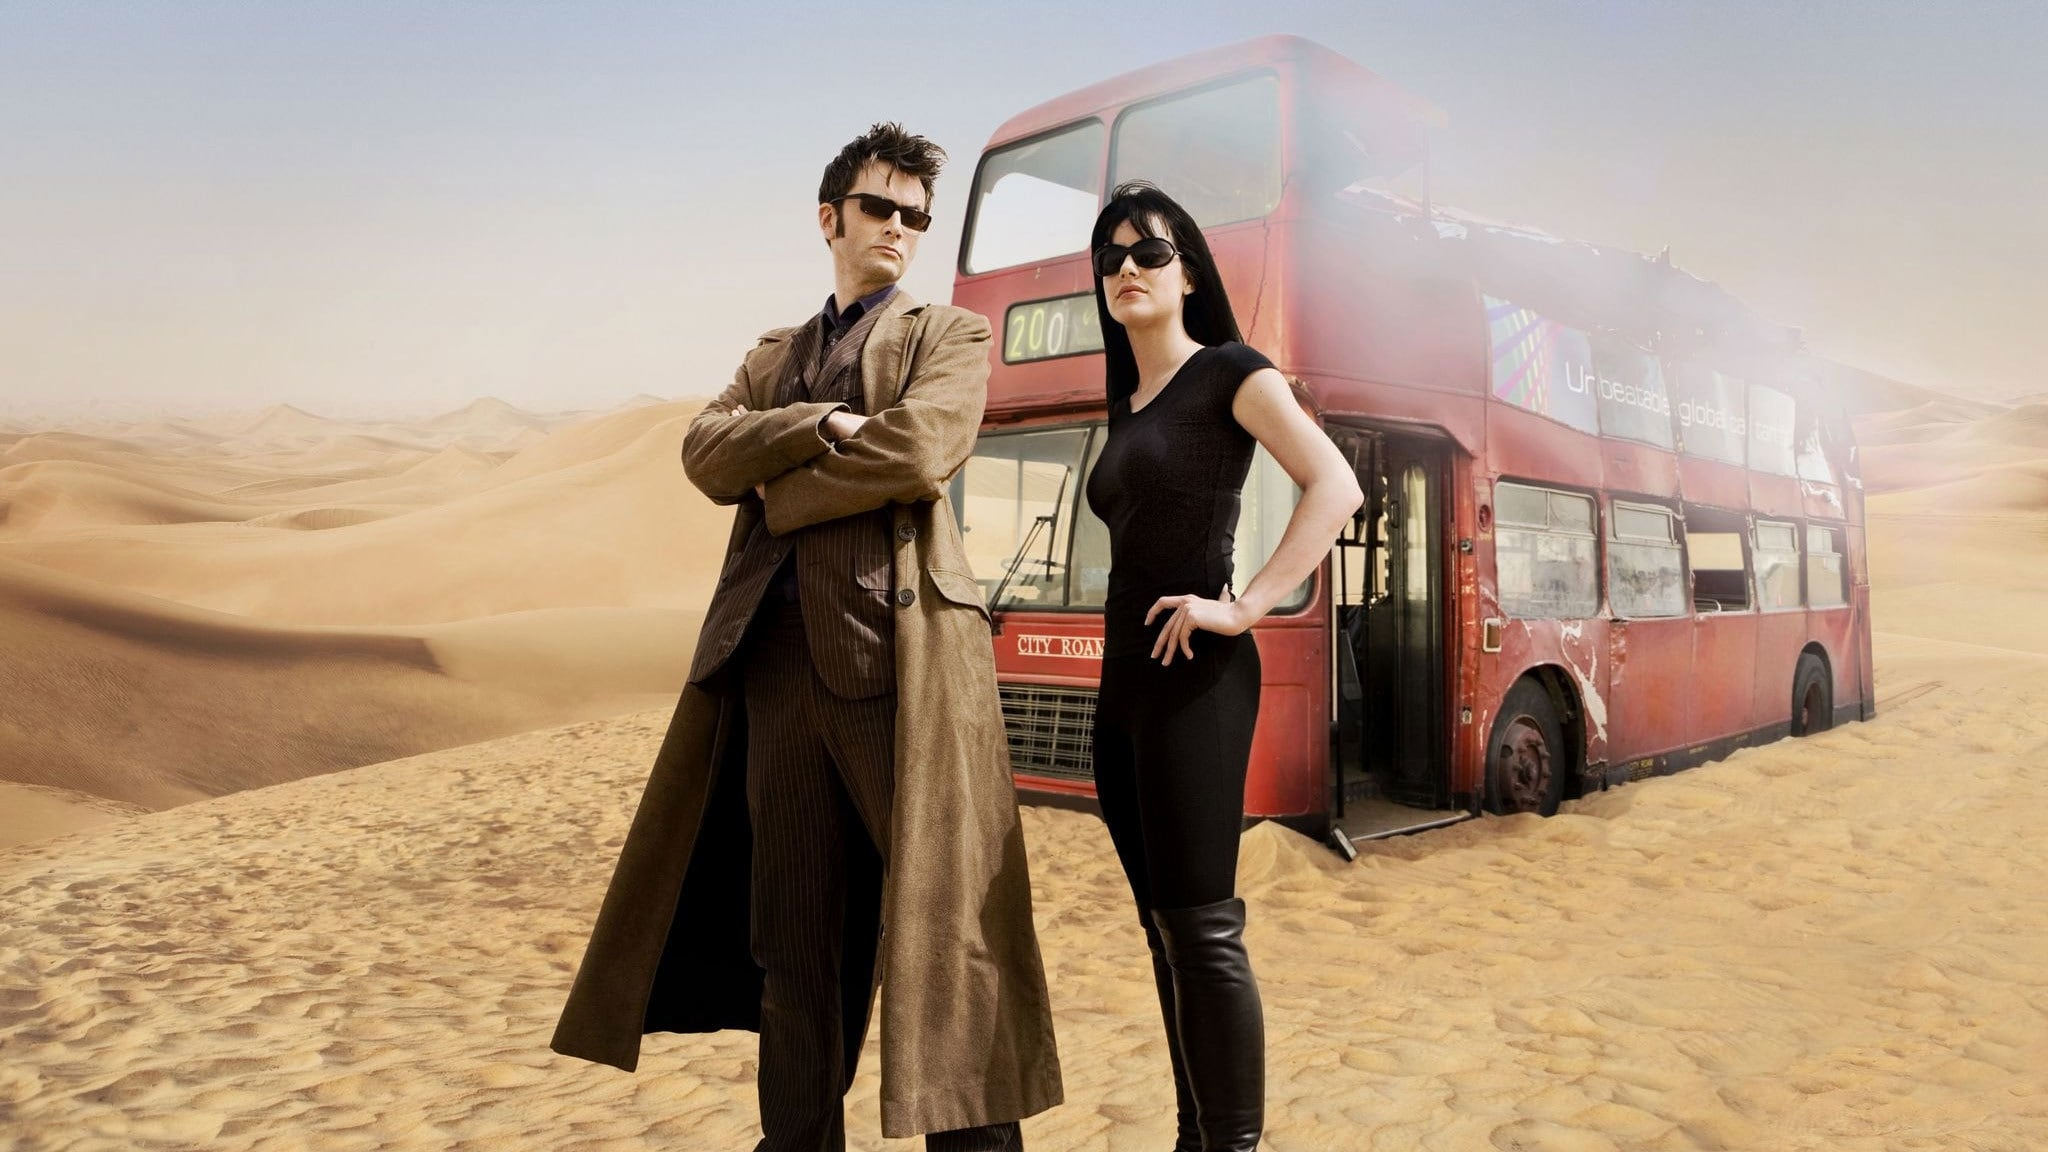 Doctor Who - Season 0 Episode 13 : Planet of the Dead